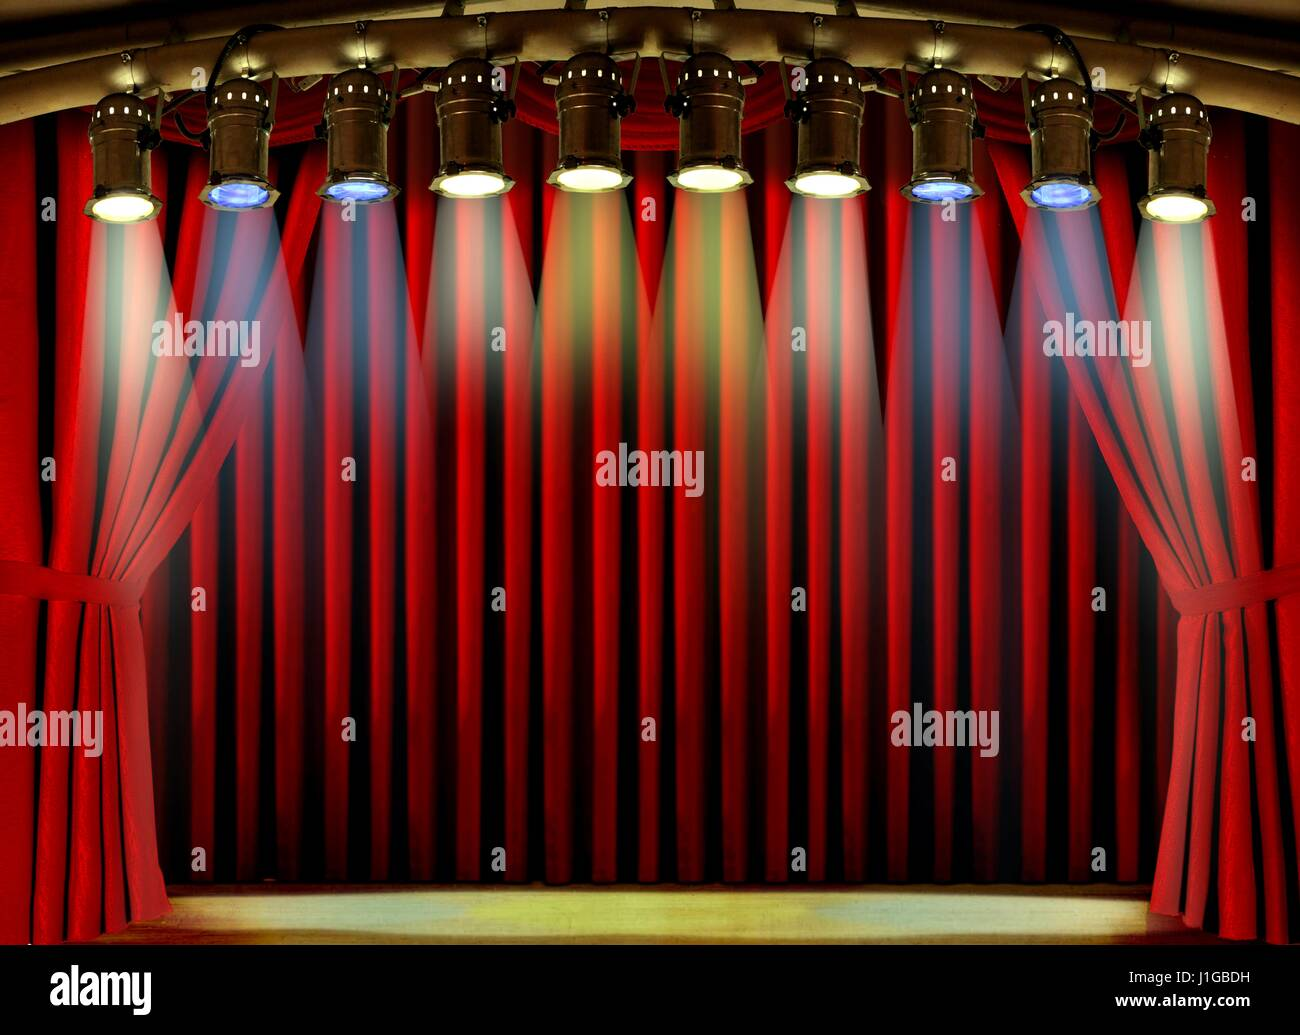 Empty stage curtains with lights - Empty Stage With Red Curtain And Spot Lights Stock Image